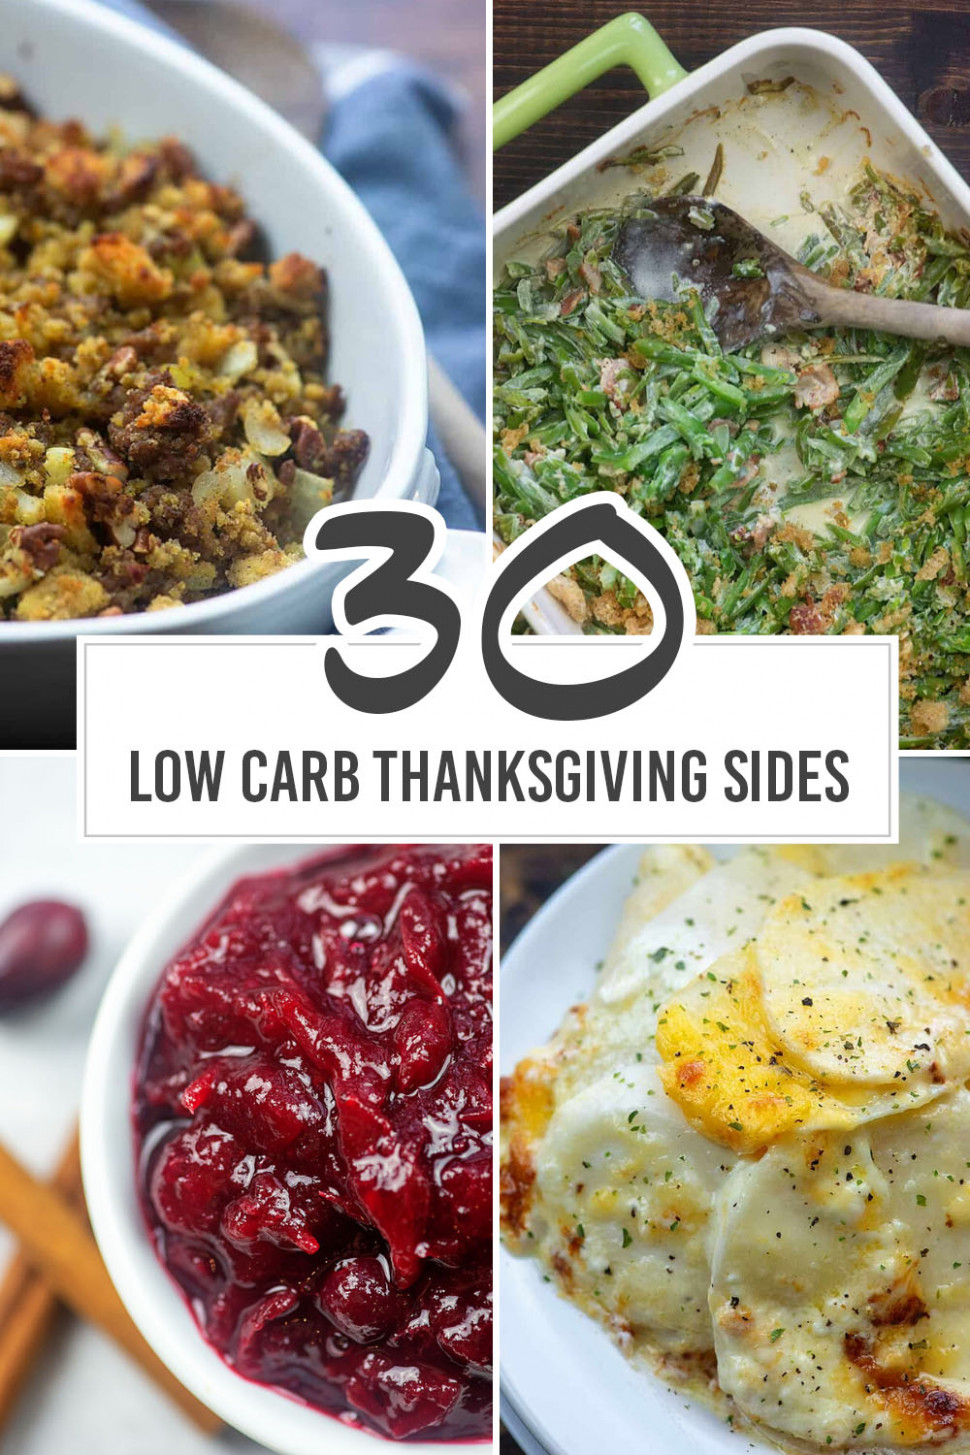 Low Carb Side Dishes For Your Thanksgiving Meal | That Low ..